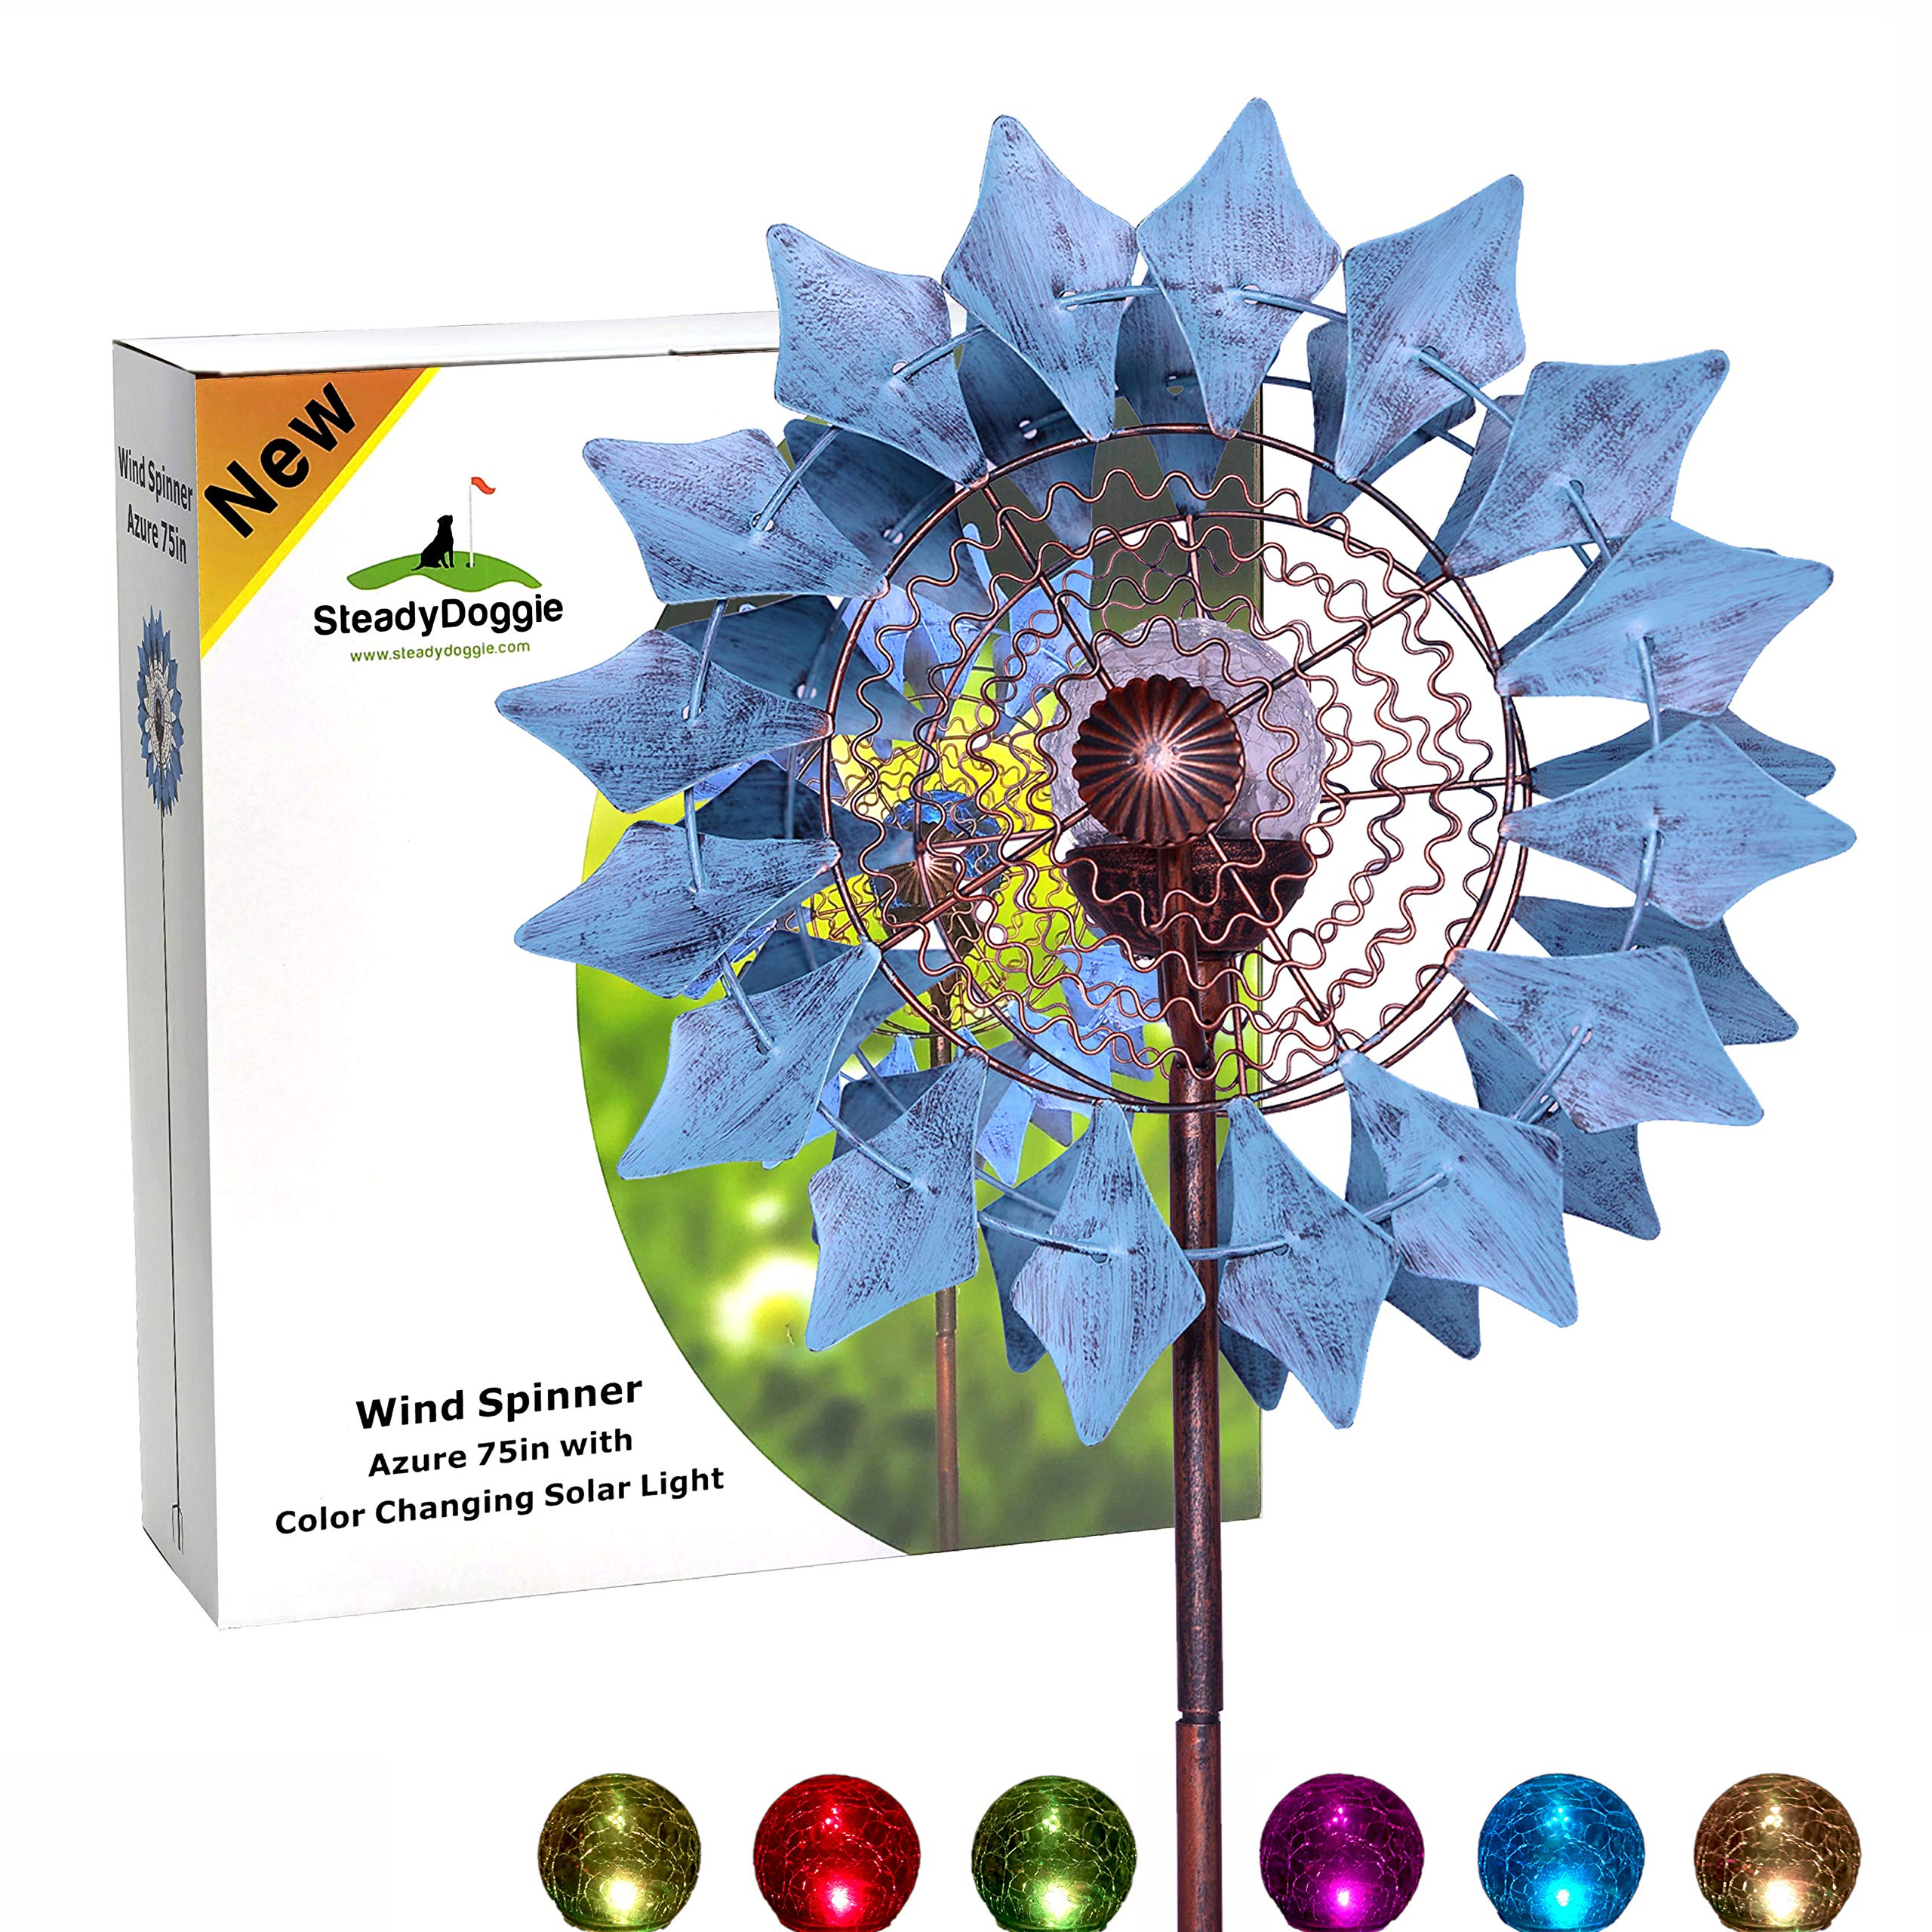 Solar Wind Spinner New Azure 75in Multi-Color Seasonal LED Lighting Solar Powered Glass Ball with Kinetic Wind Spinner Dual Direction for Patio Lawn & Garden by SteadyDoggie